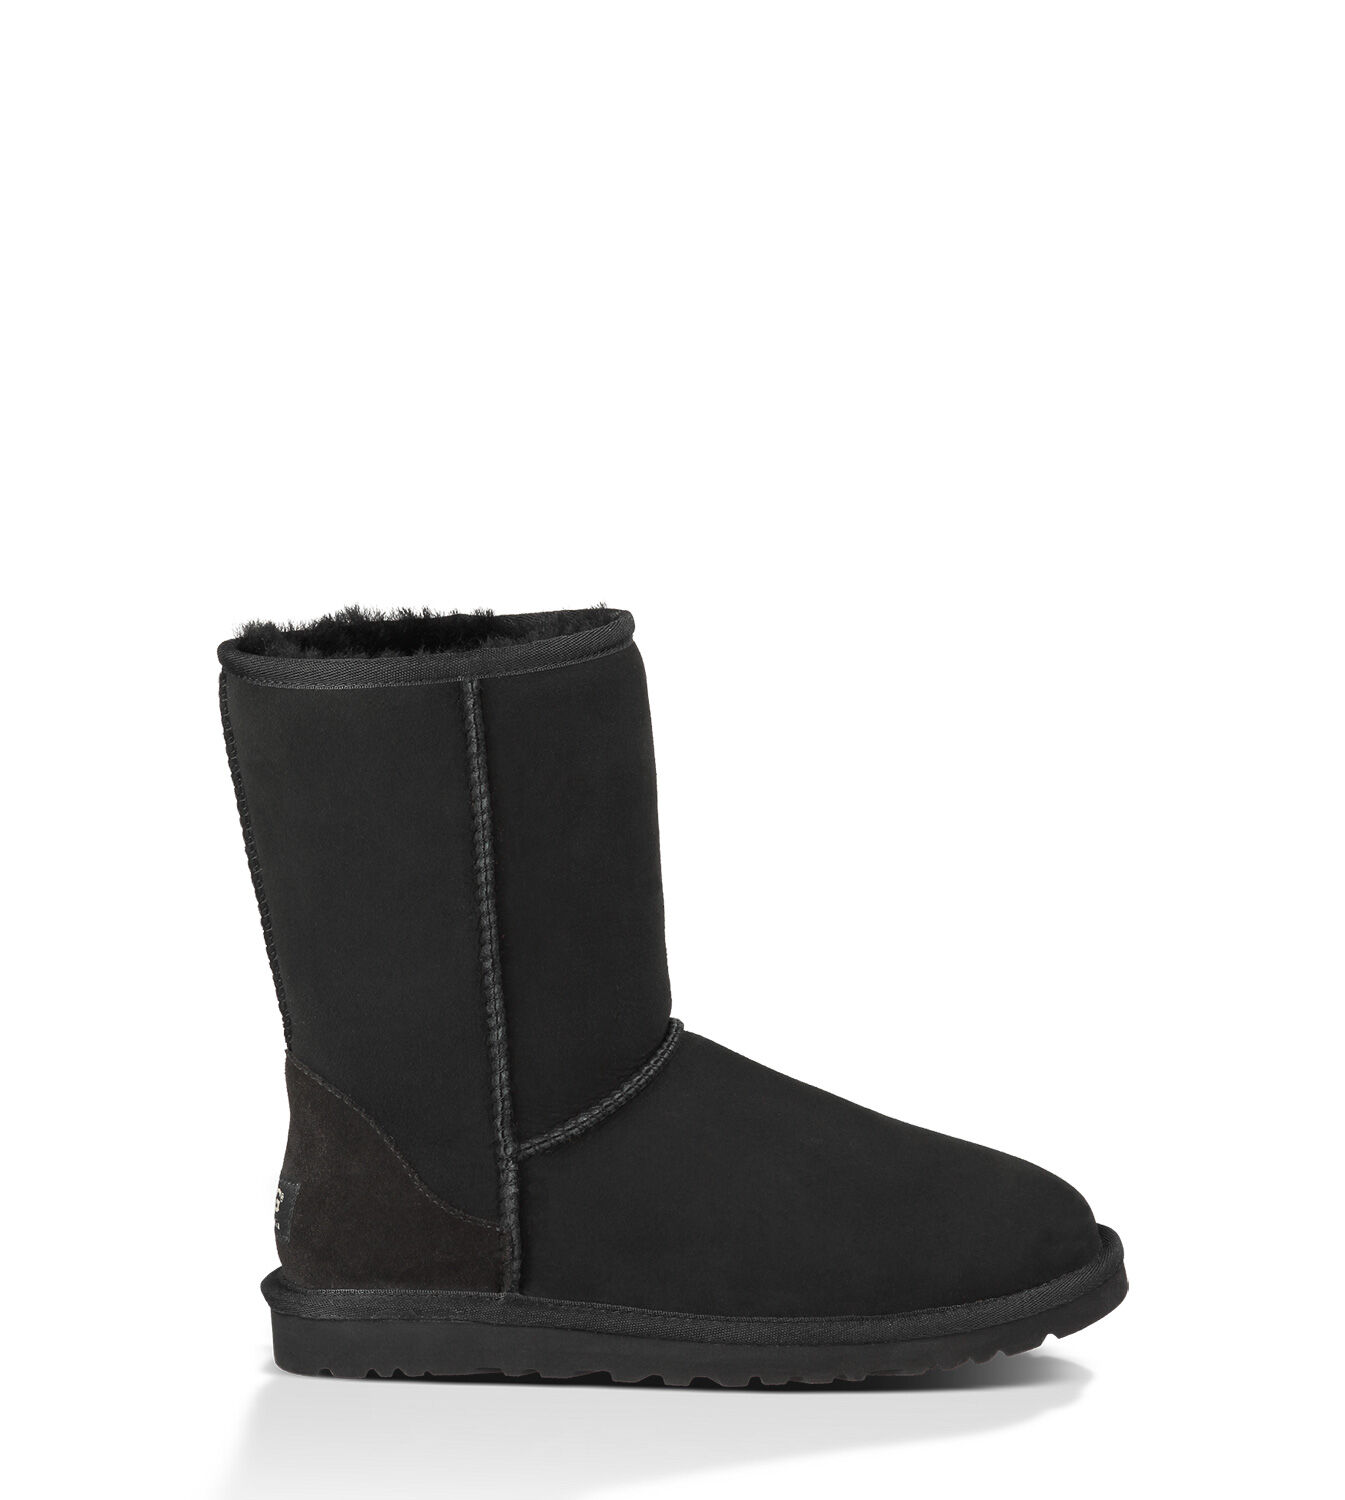 What size in kids uggs would I wear if I wear a 6 in women's uggs?